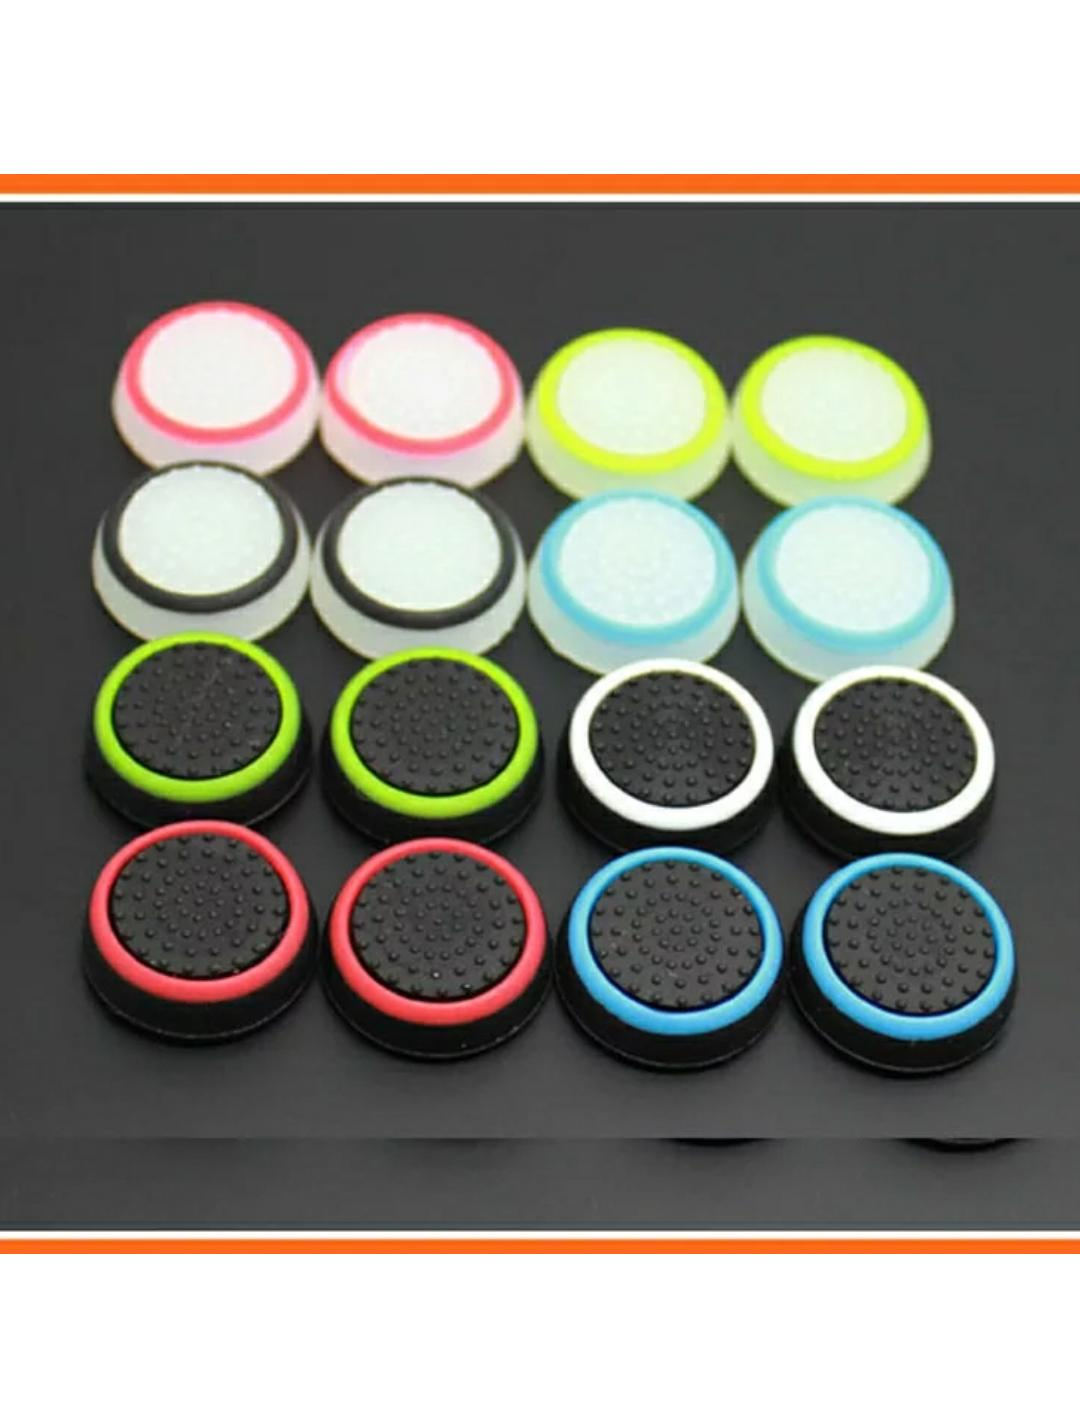 Controller Thumb Grips - 2 PC's PS4/PS3/Xbox